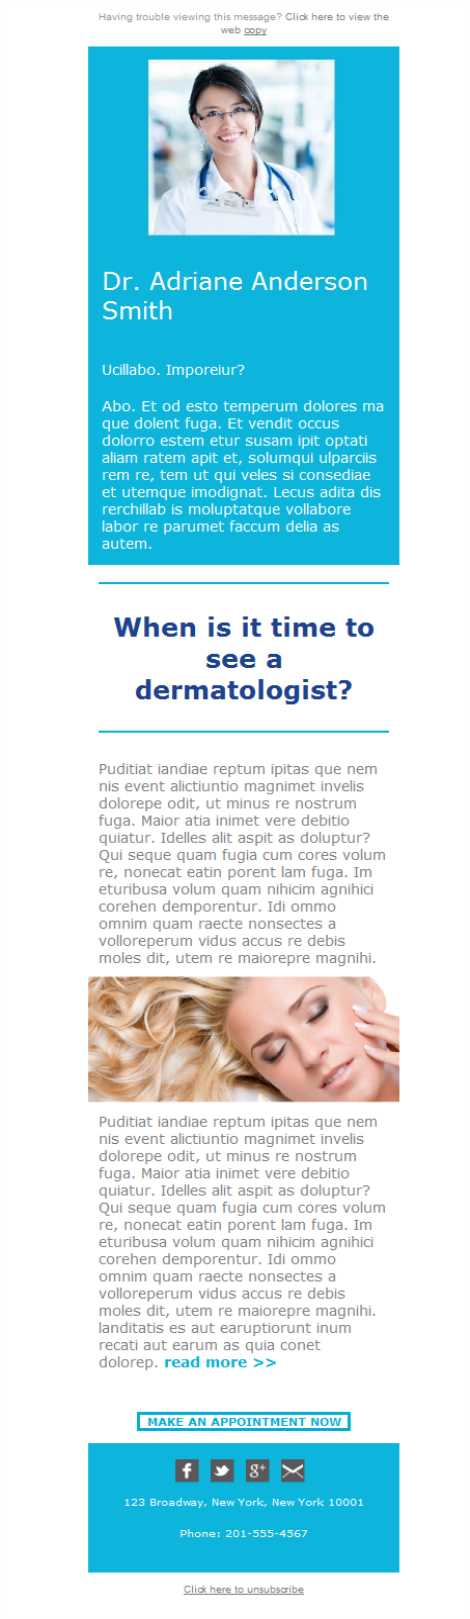 Templates Emailing Dermatologist Doctor Sarbacane